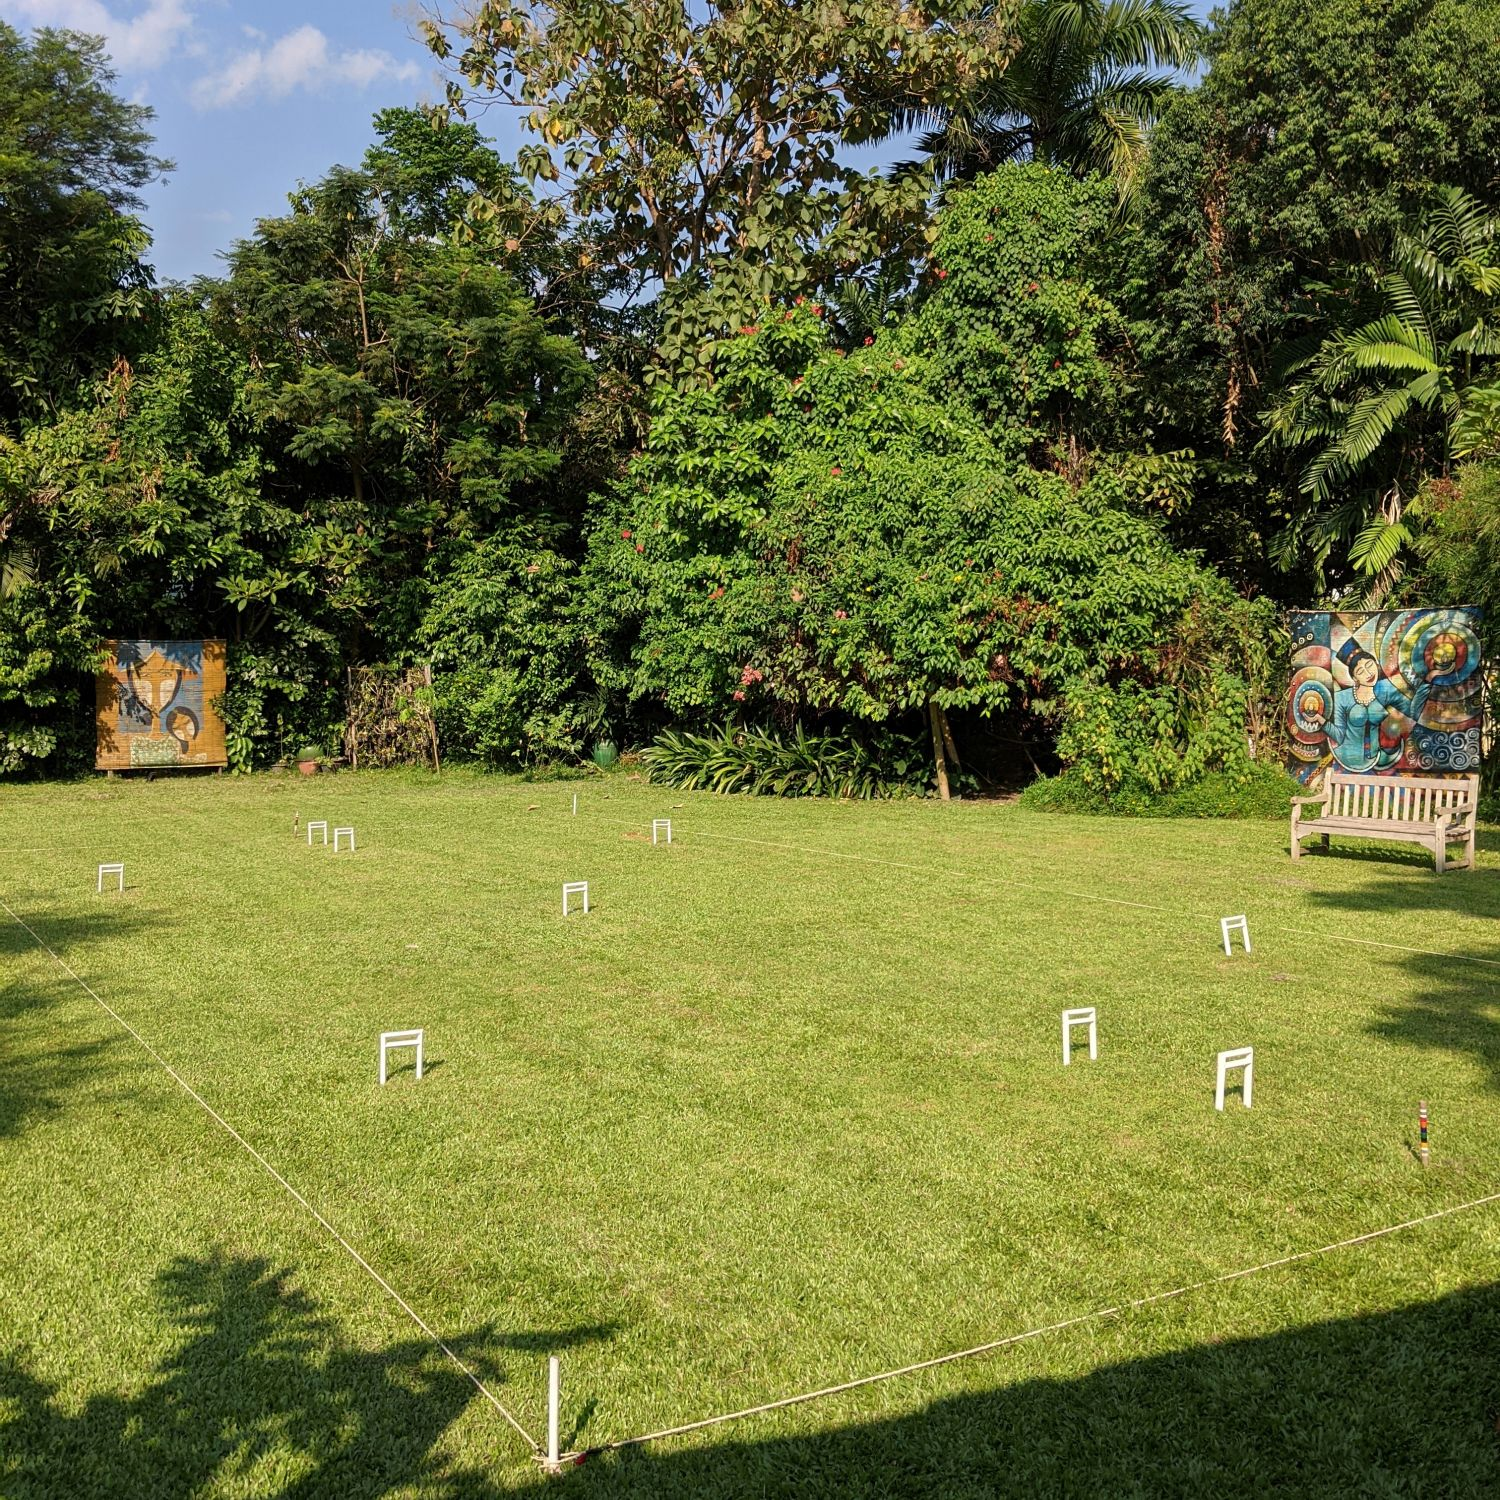 belmond governor's residence yangon croquet lawn